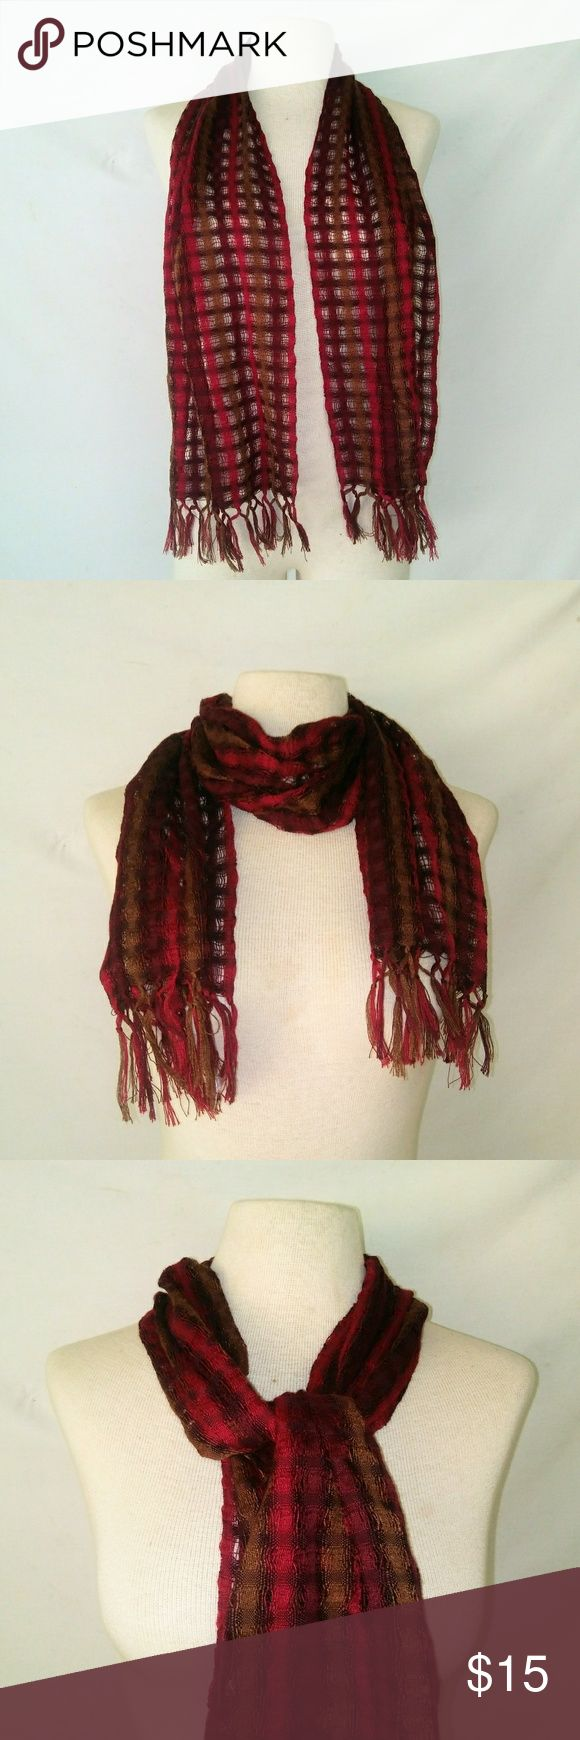 WOVEN Fall Colors Scarf Red Maroon & Tan Brown Loose Weave Lightweight Scarf with Tassle Fringe. No tags. In excellent used condition. From a smoke free home. Make an offer! BUNDLE & Automatically Get 20% Off on 2+ Items.  New Feature Alert: Bundle one or more items and I'll make you a customized awesome offer! Just bundle and wait for my offer... Up to 40% off - the bigger the bundle the bigger the savings! *2017 SUGGESTED USER* Vintage Accessories Scarves & Wraps